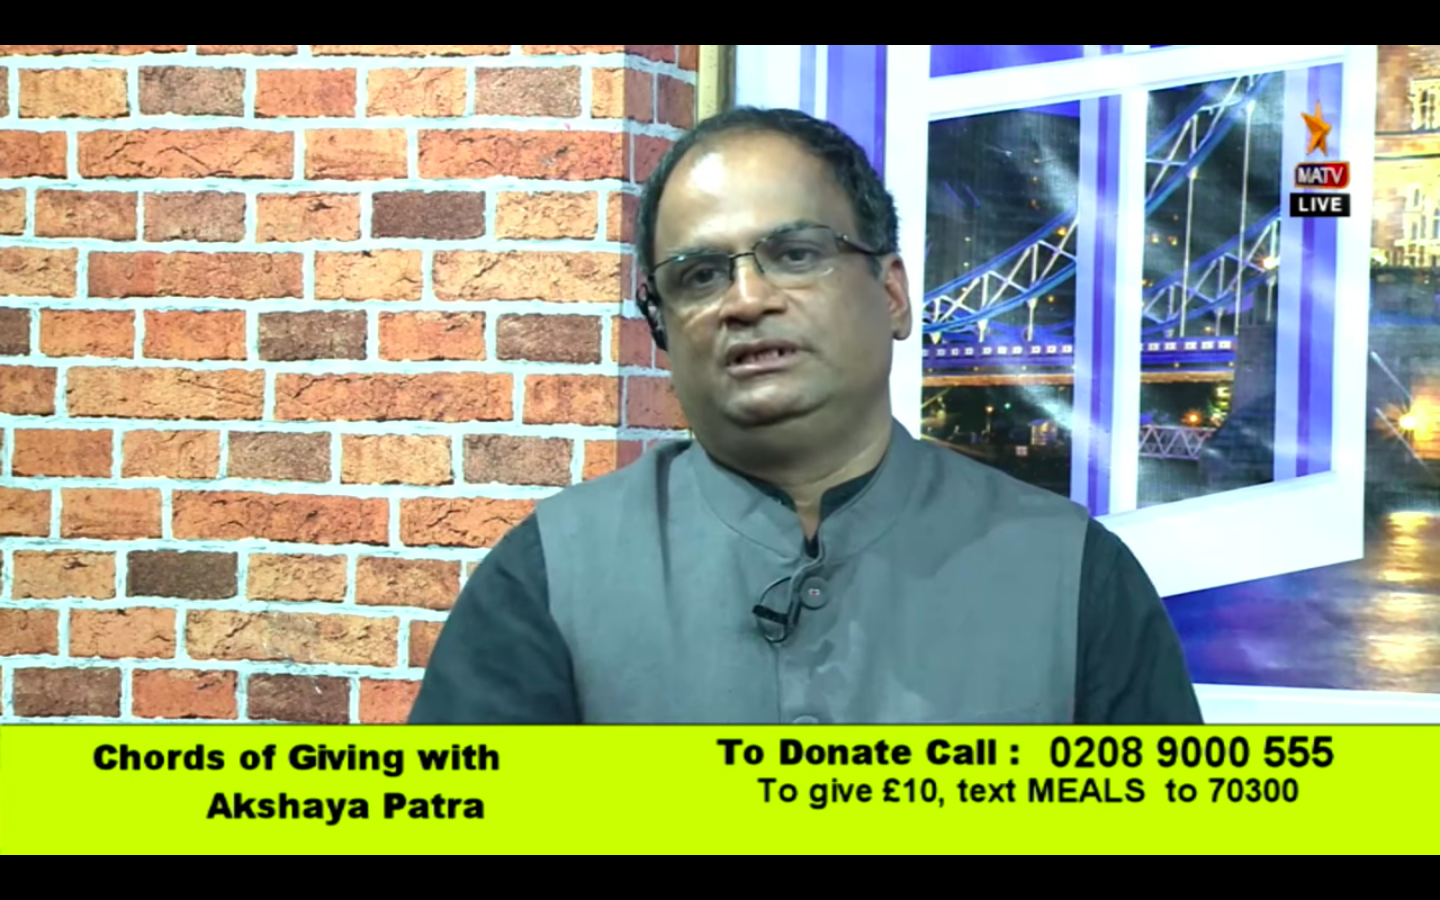 Chords of Giving with Akshaya Patra UK Live on MATV